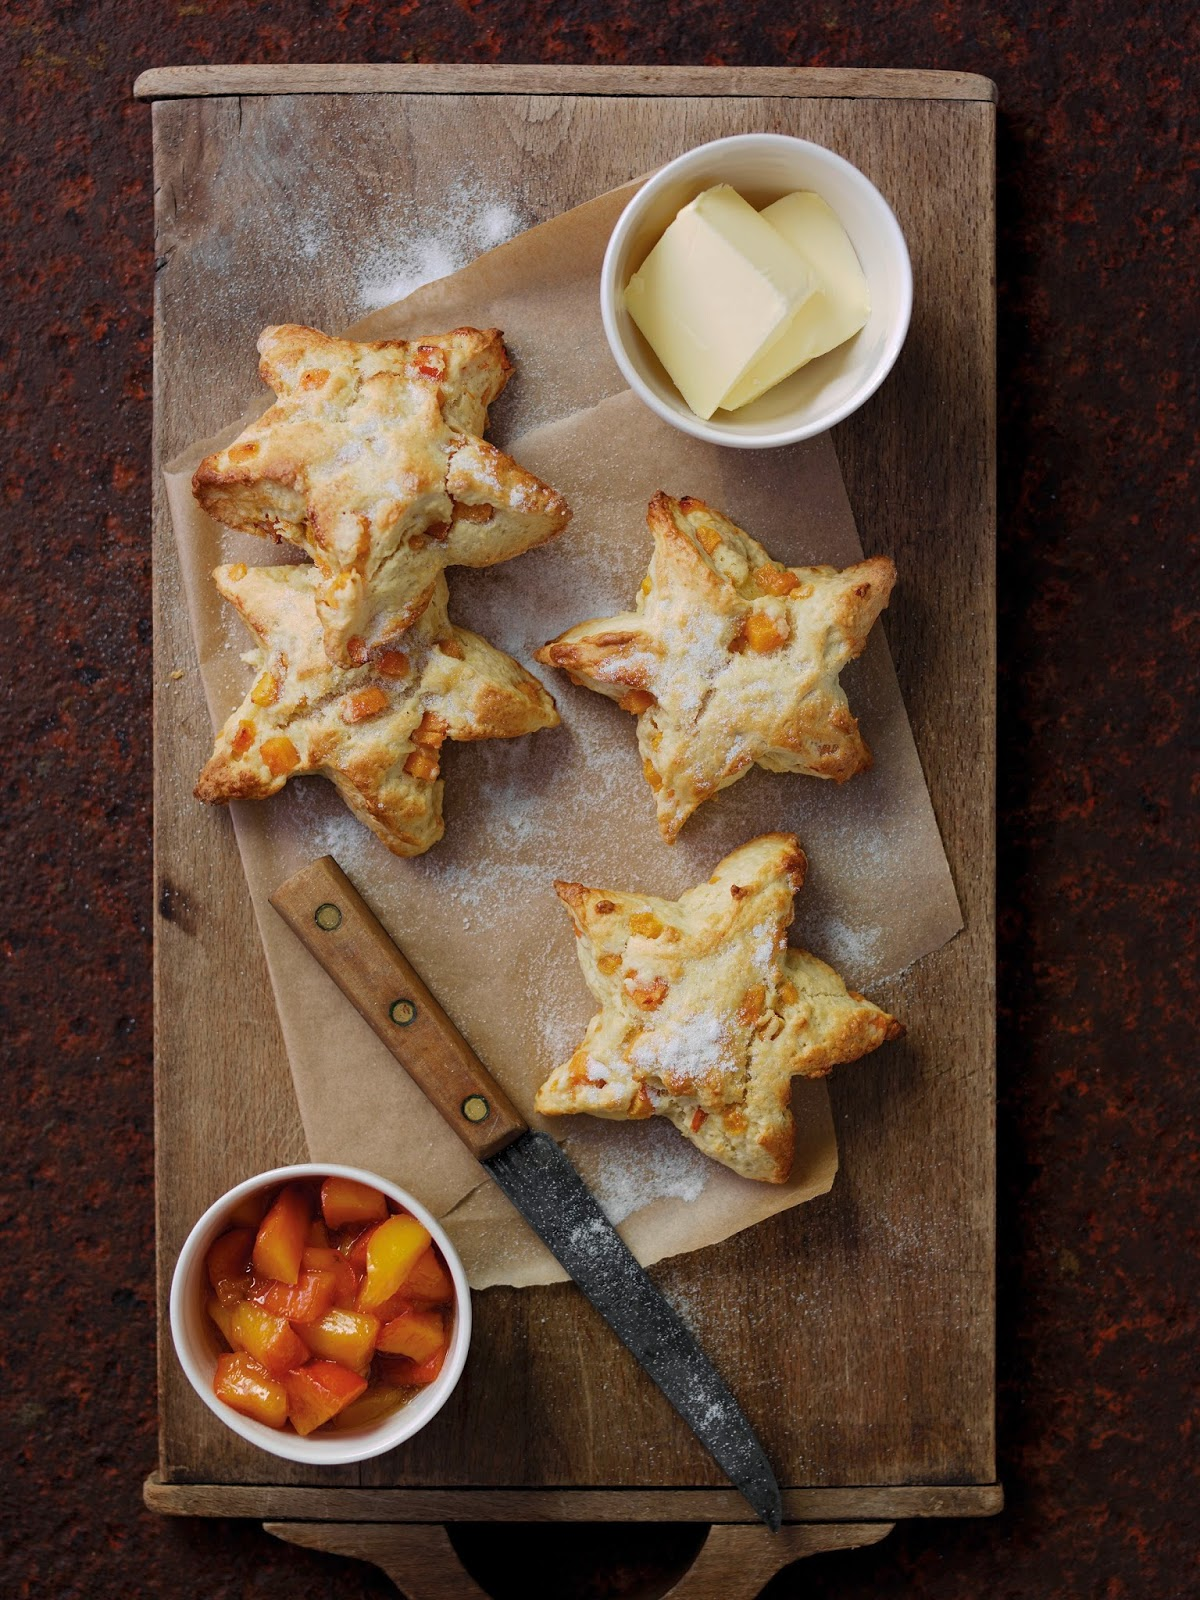 Persimon® Star Scones: Great For Afternoon Tea